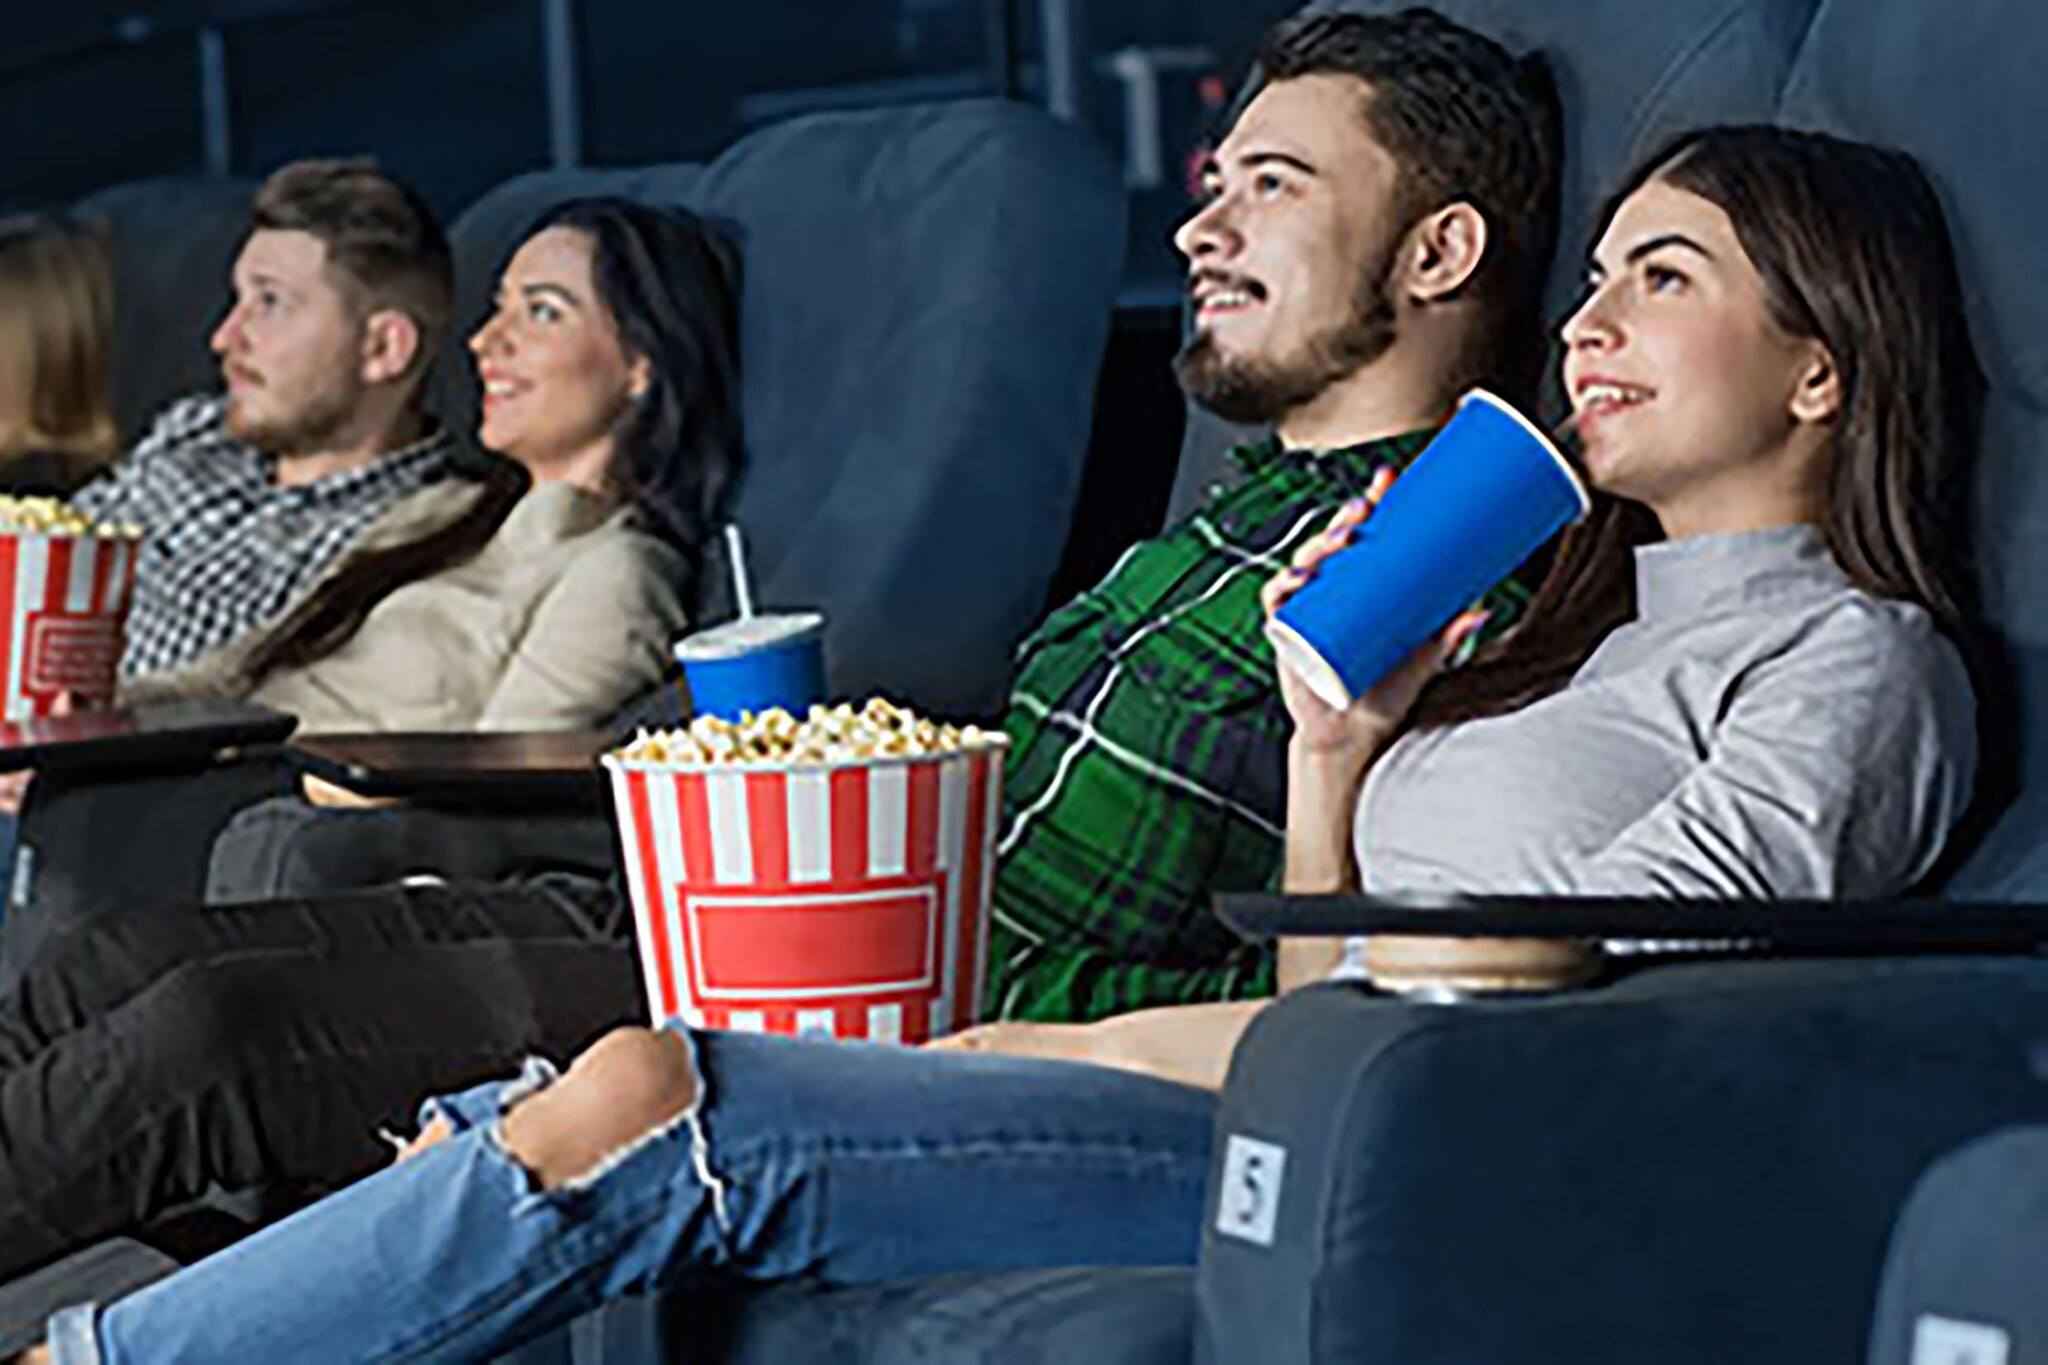 Couple laughing in movie theatre